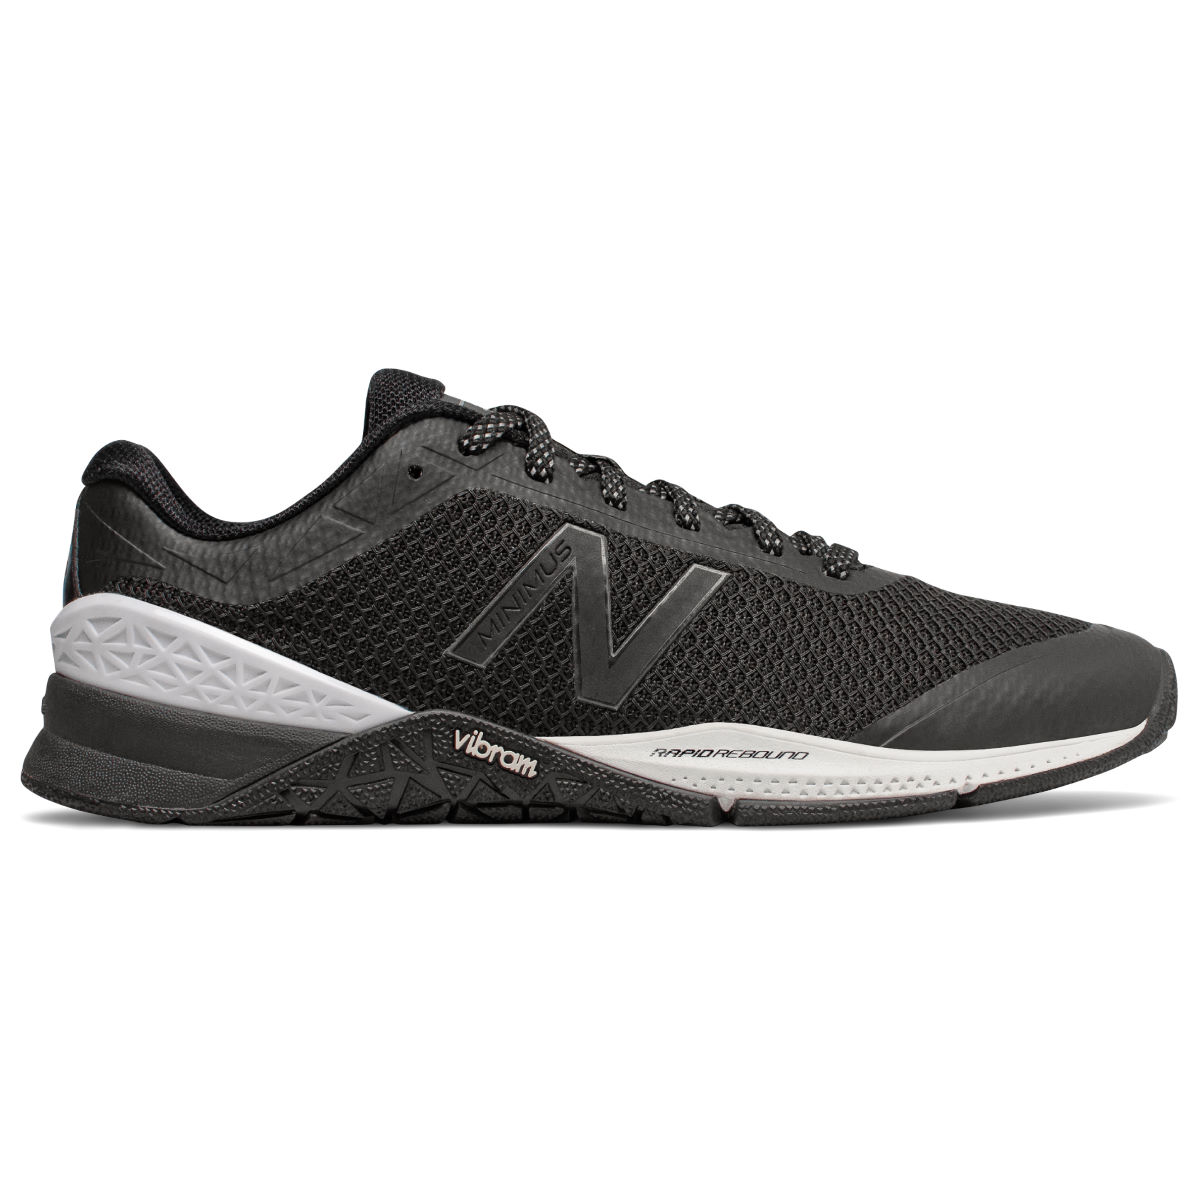 New Balance MX40 V1 Shoes   Running Shoes